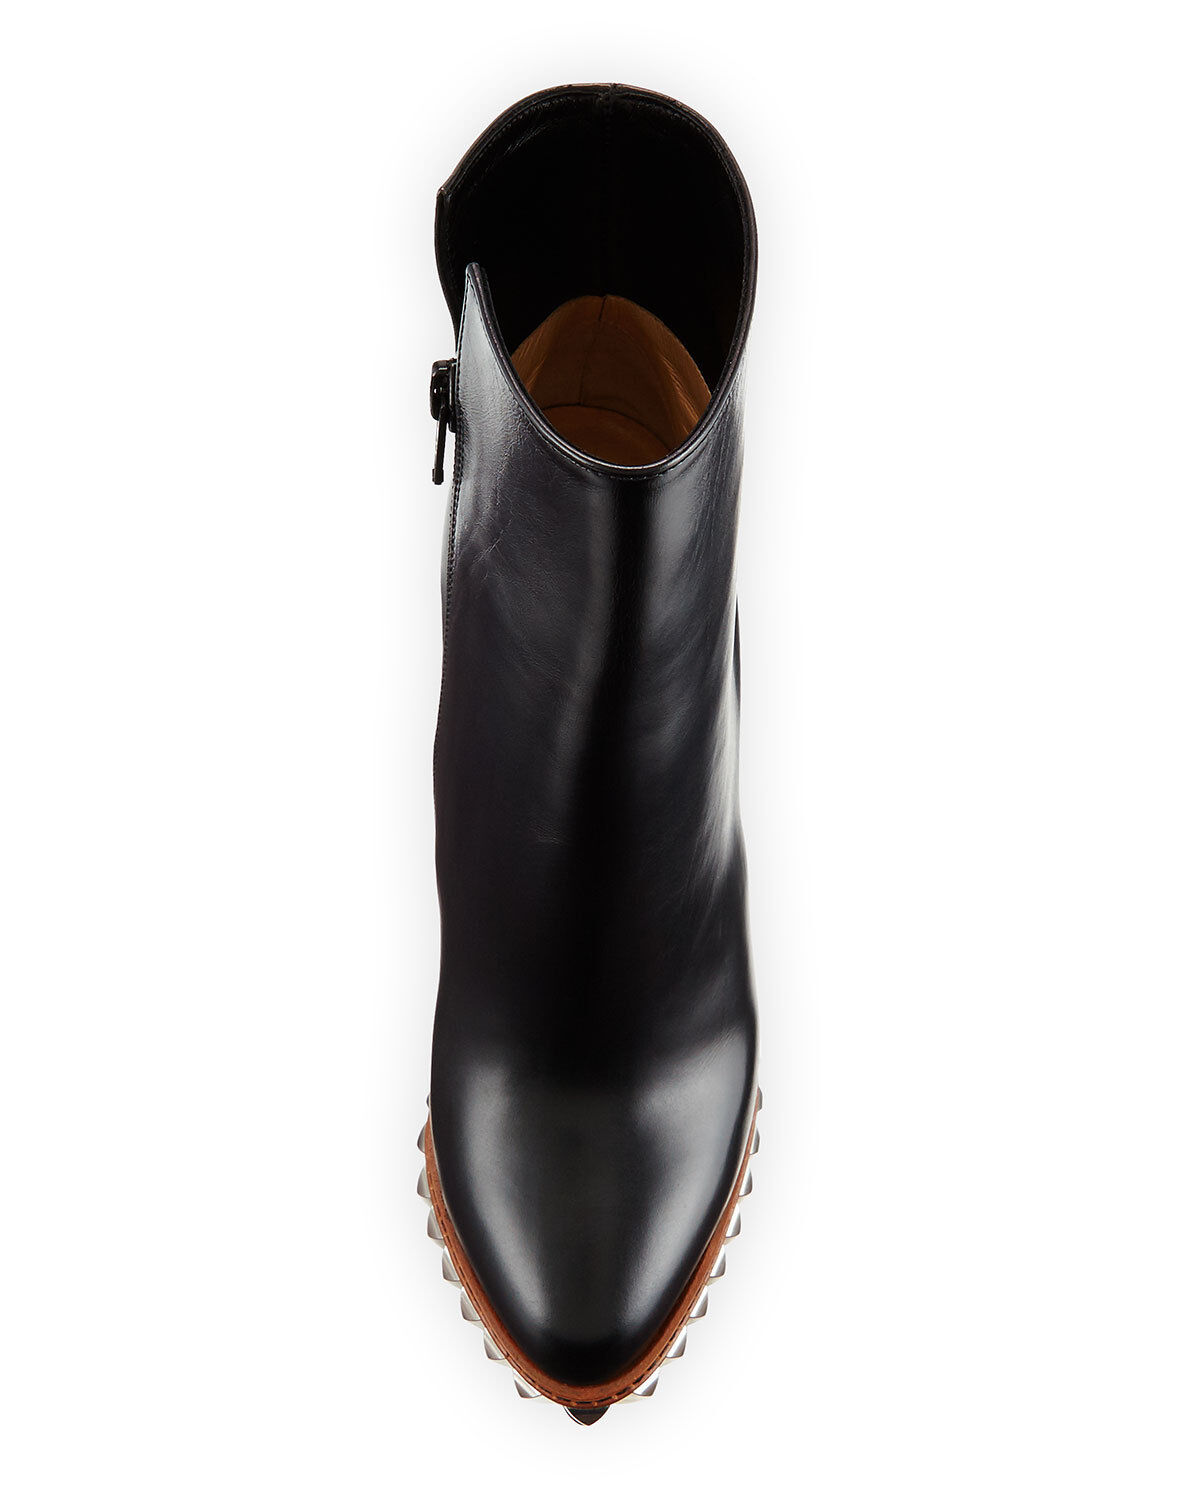 09bc4603d6f 100 Auth Women Louboutin Faolo Pyramid Stud Platform Boots/bootie US 6.5